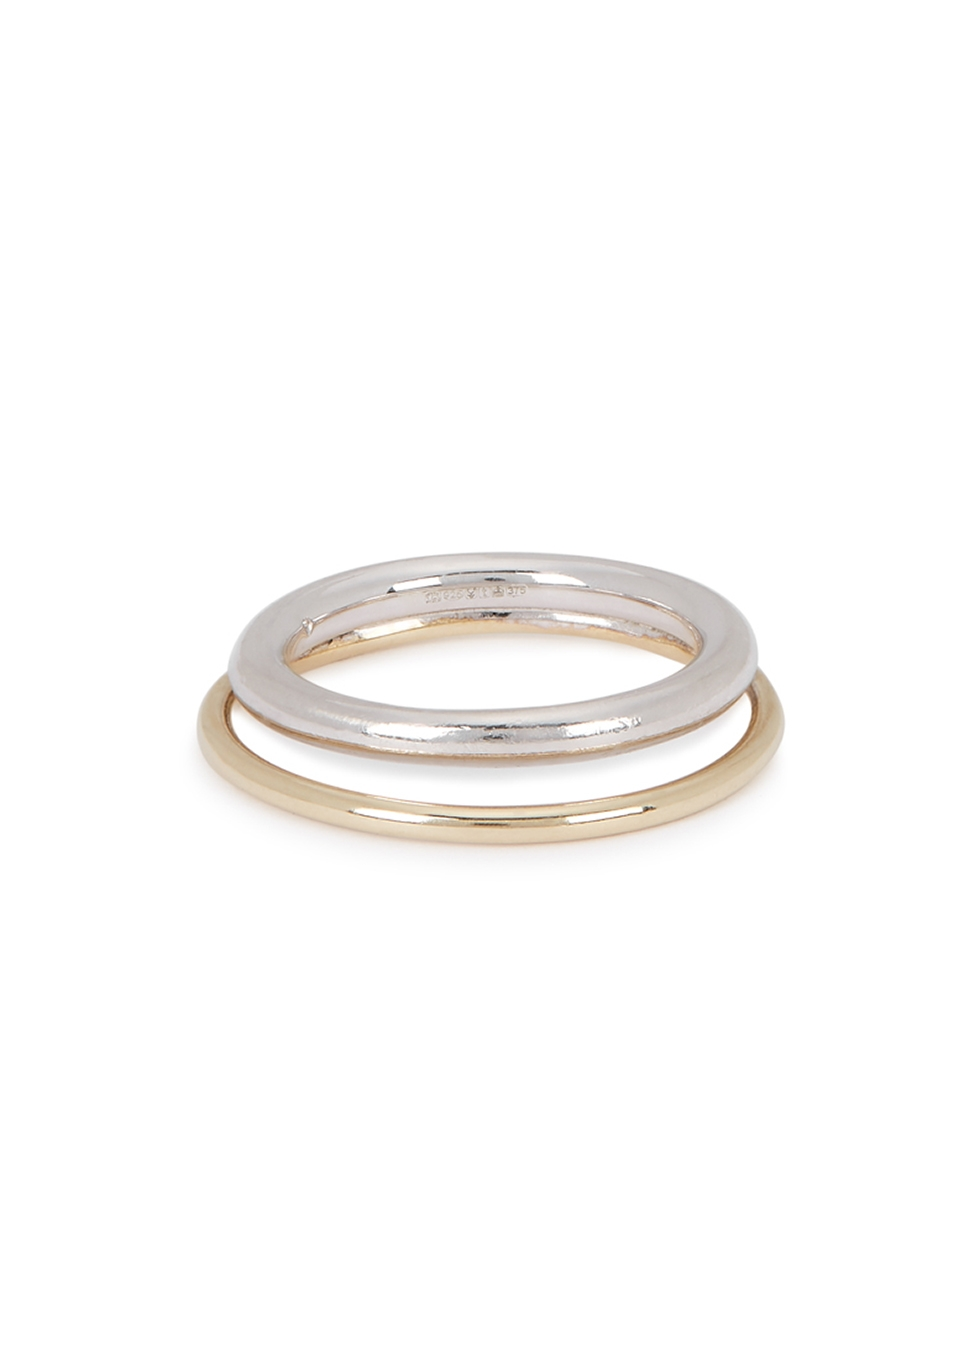 Duo sterling silver and gold ring